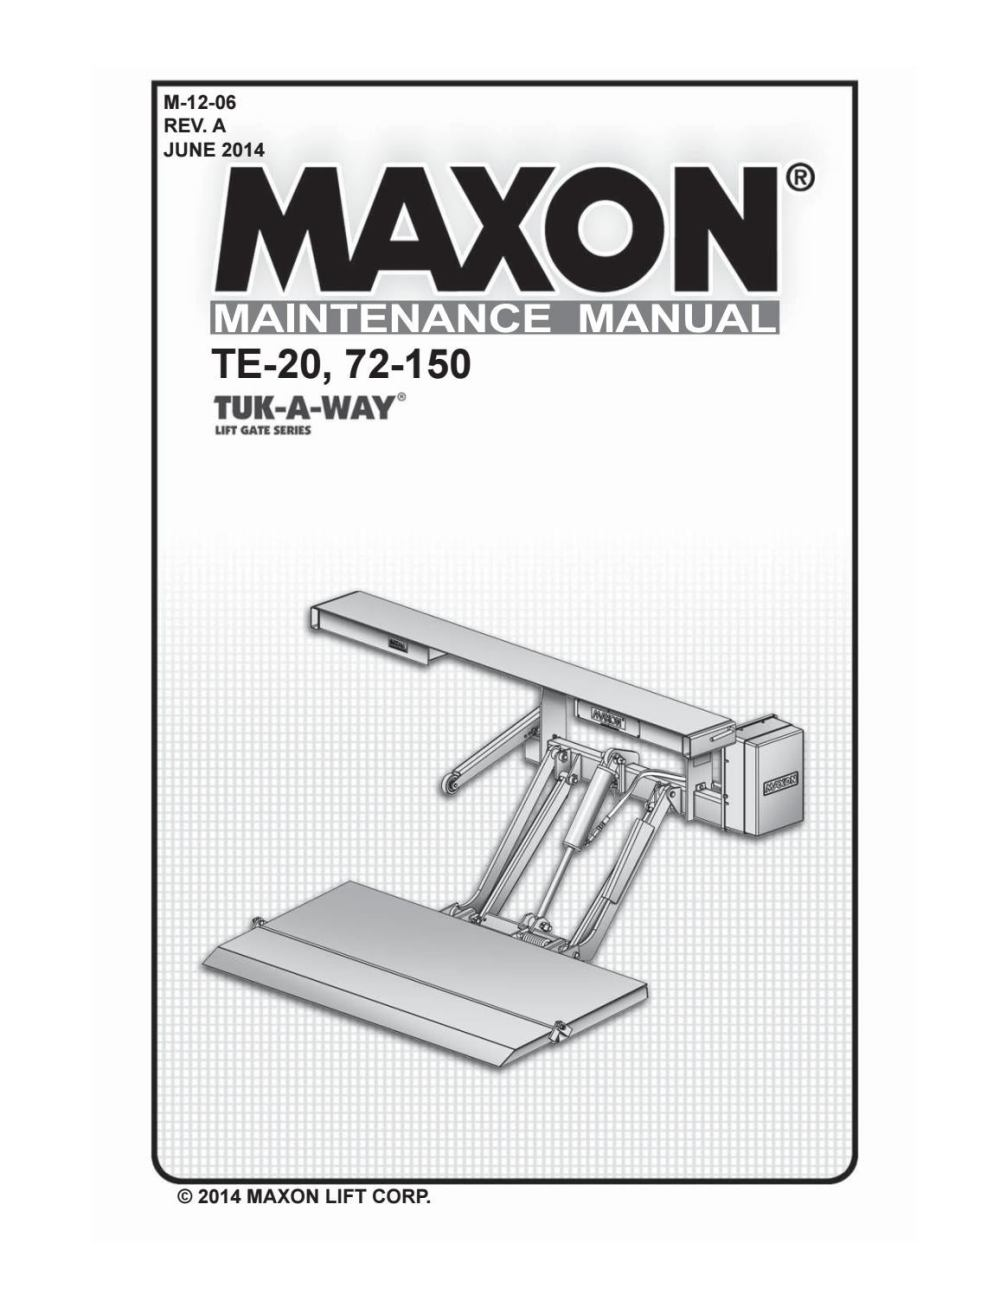 medium resolution of maxon 72 150 te 20 liftgate parts manual by the liftgate parts co issuu